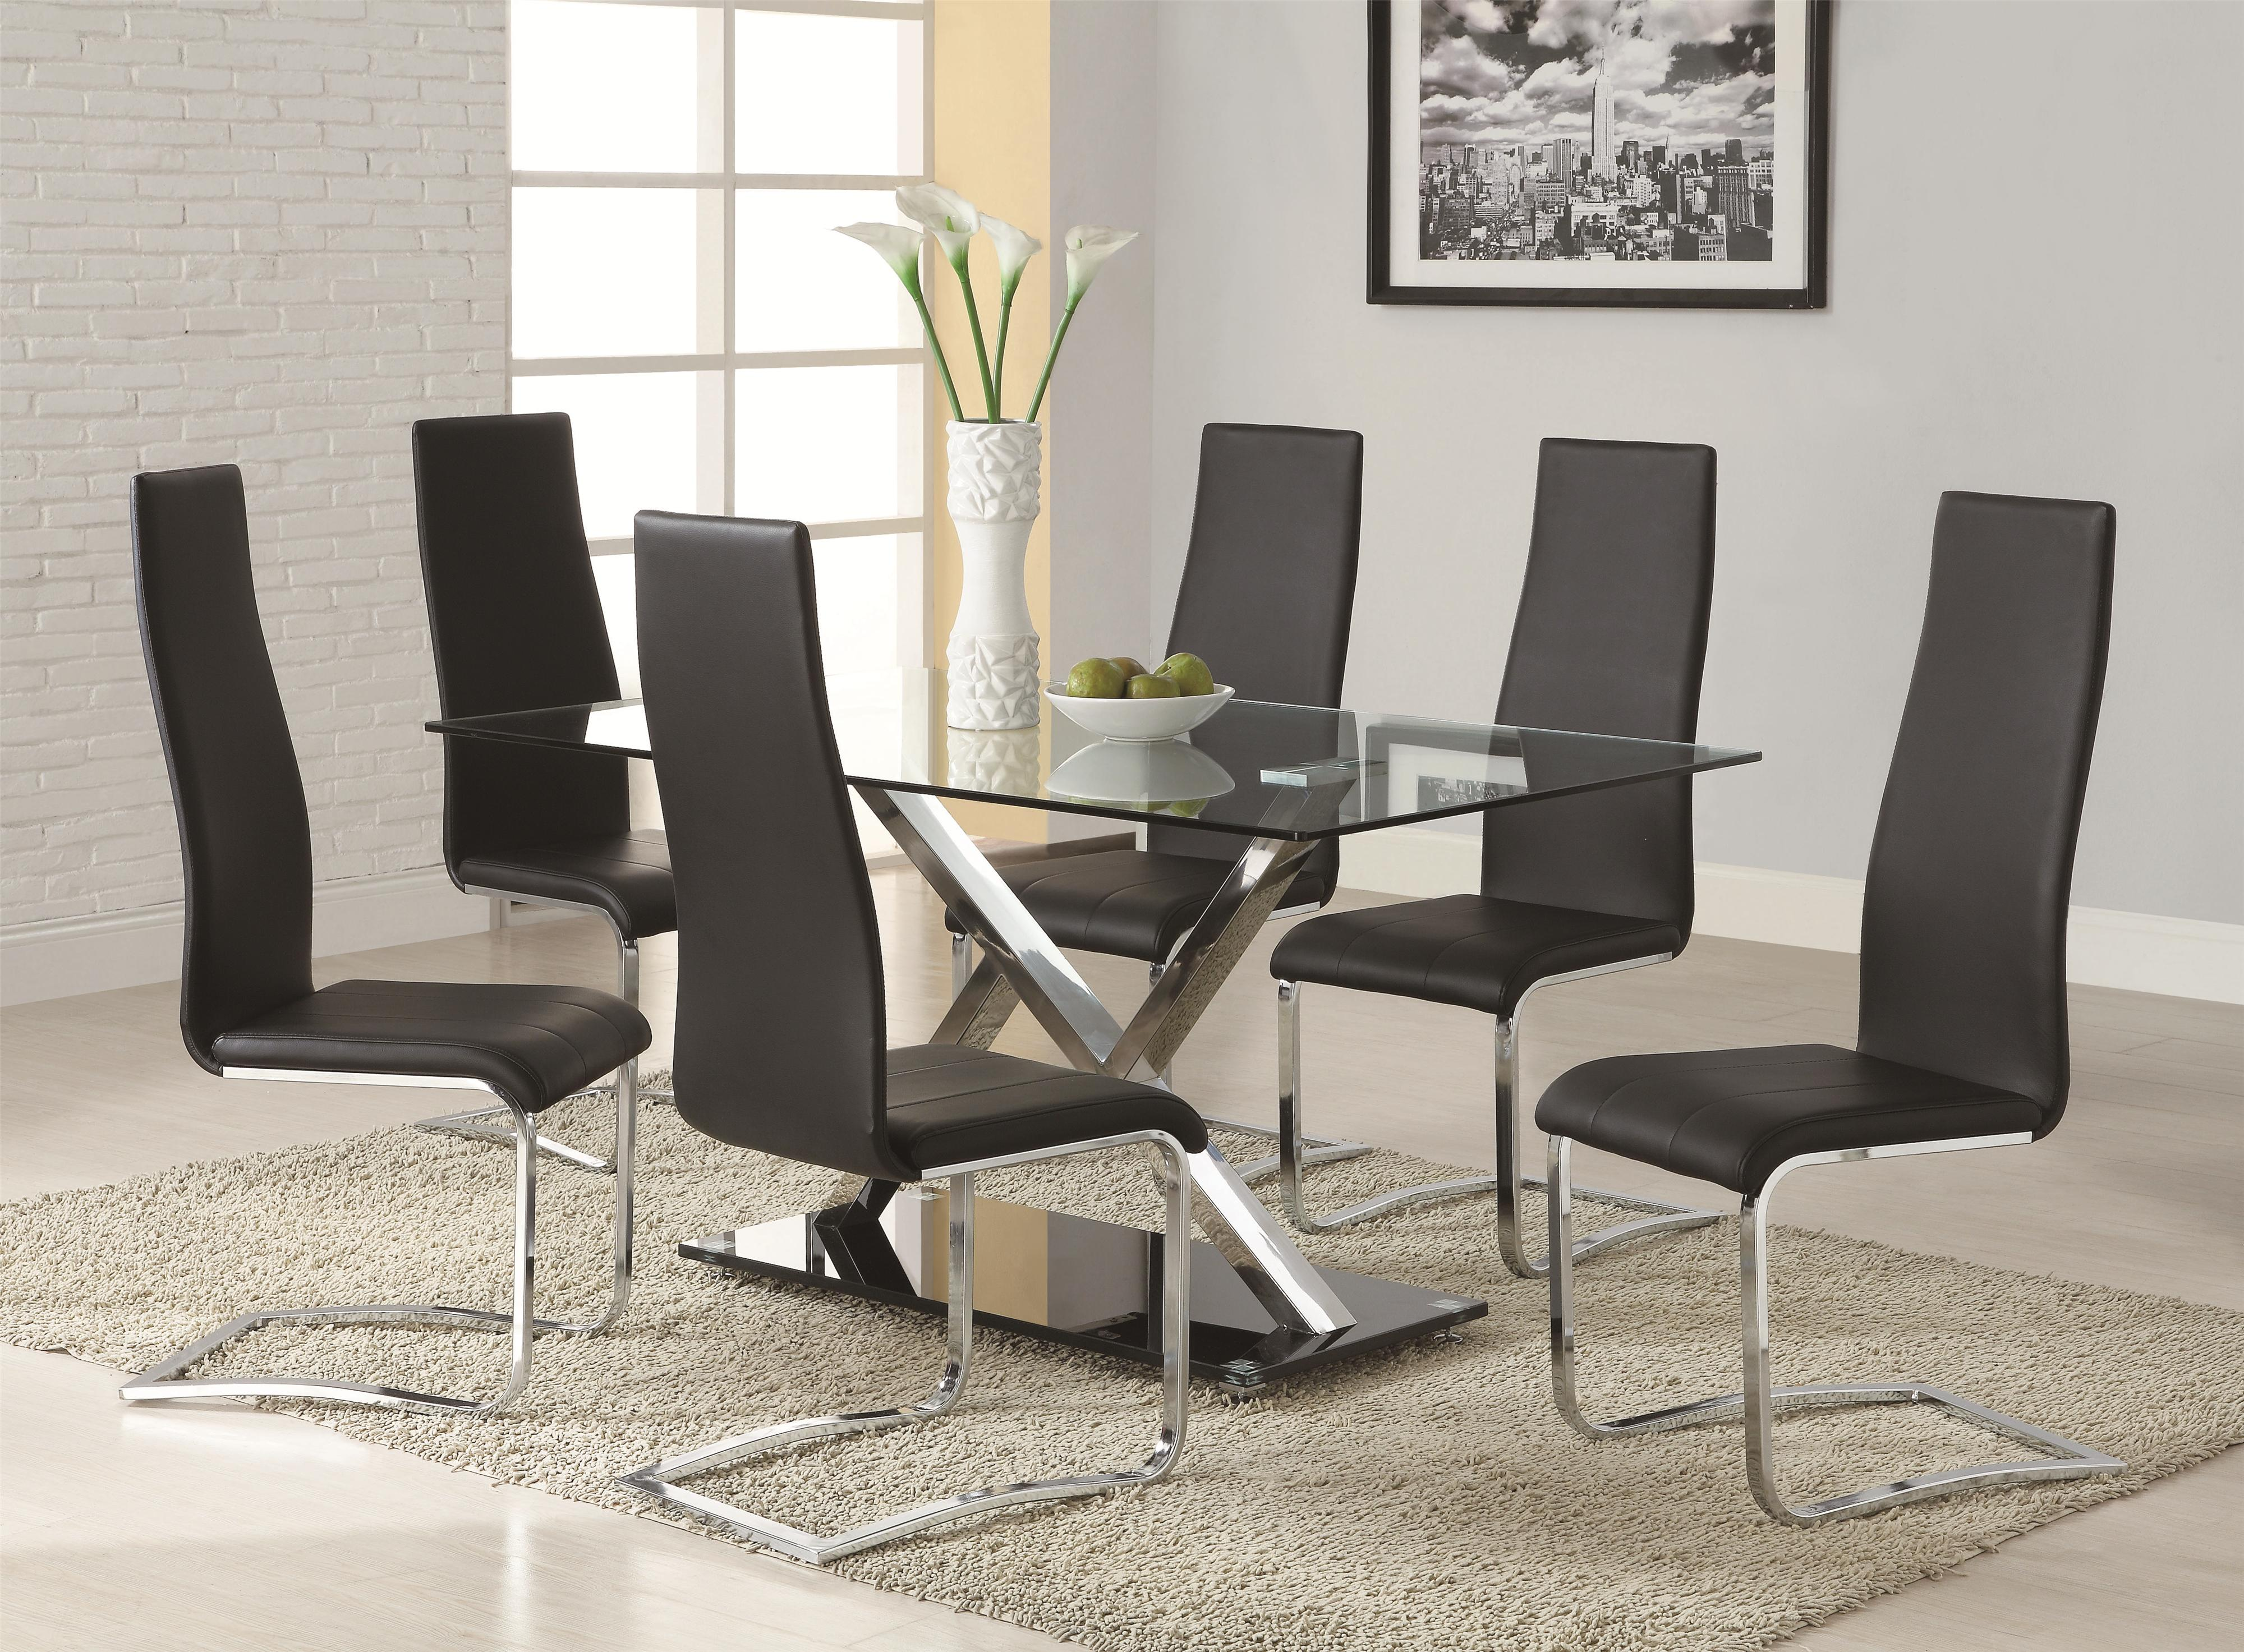 Coaster modern dining contemporary dining room set northeast factory direct dining 7 or more piece sets cleveland eastlake westlake mentor medina